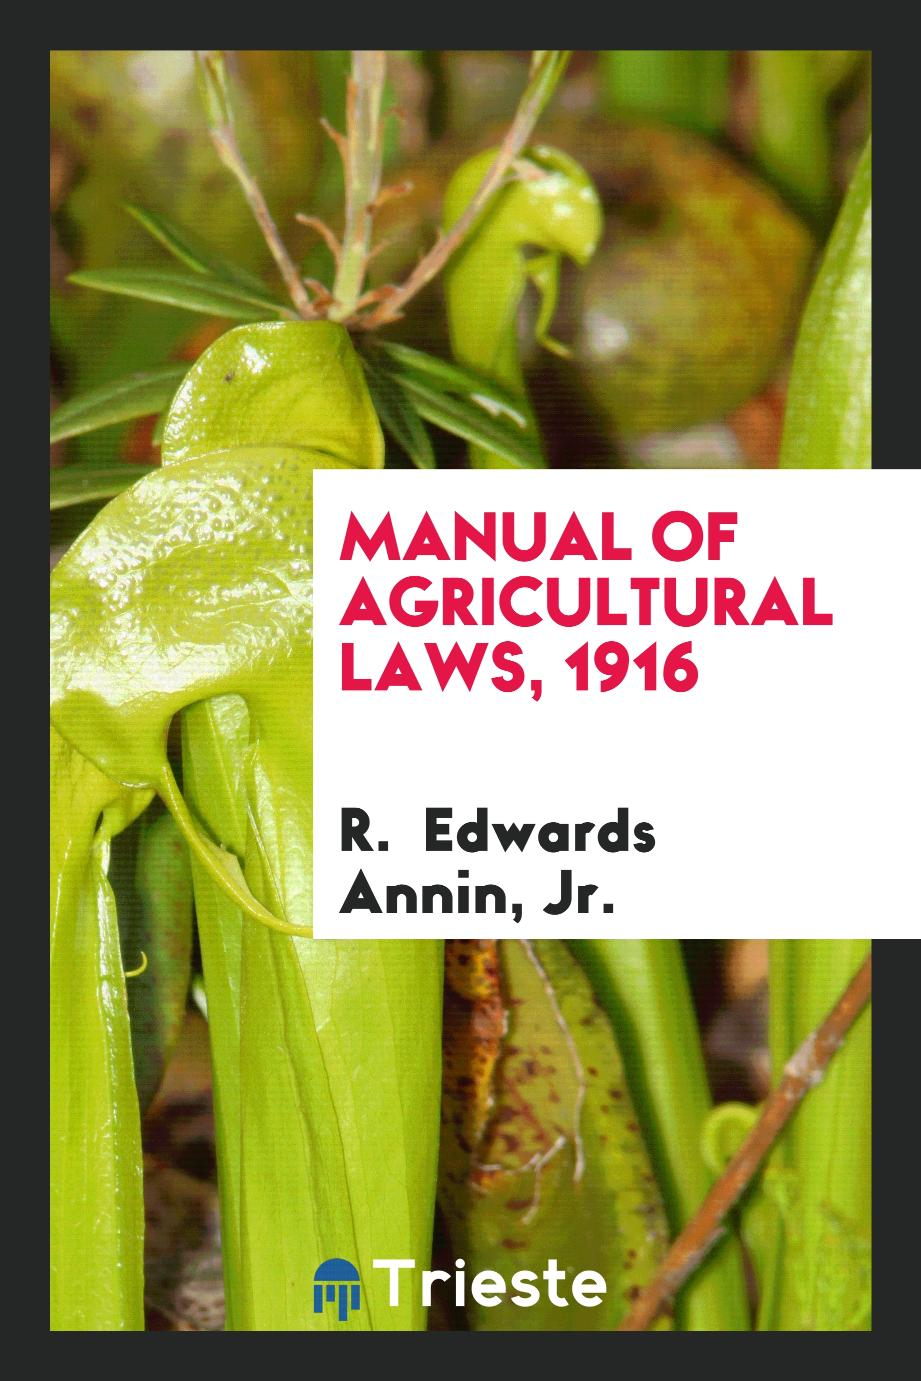 Manual of agricultural laws, 1916